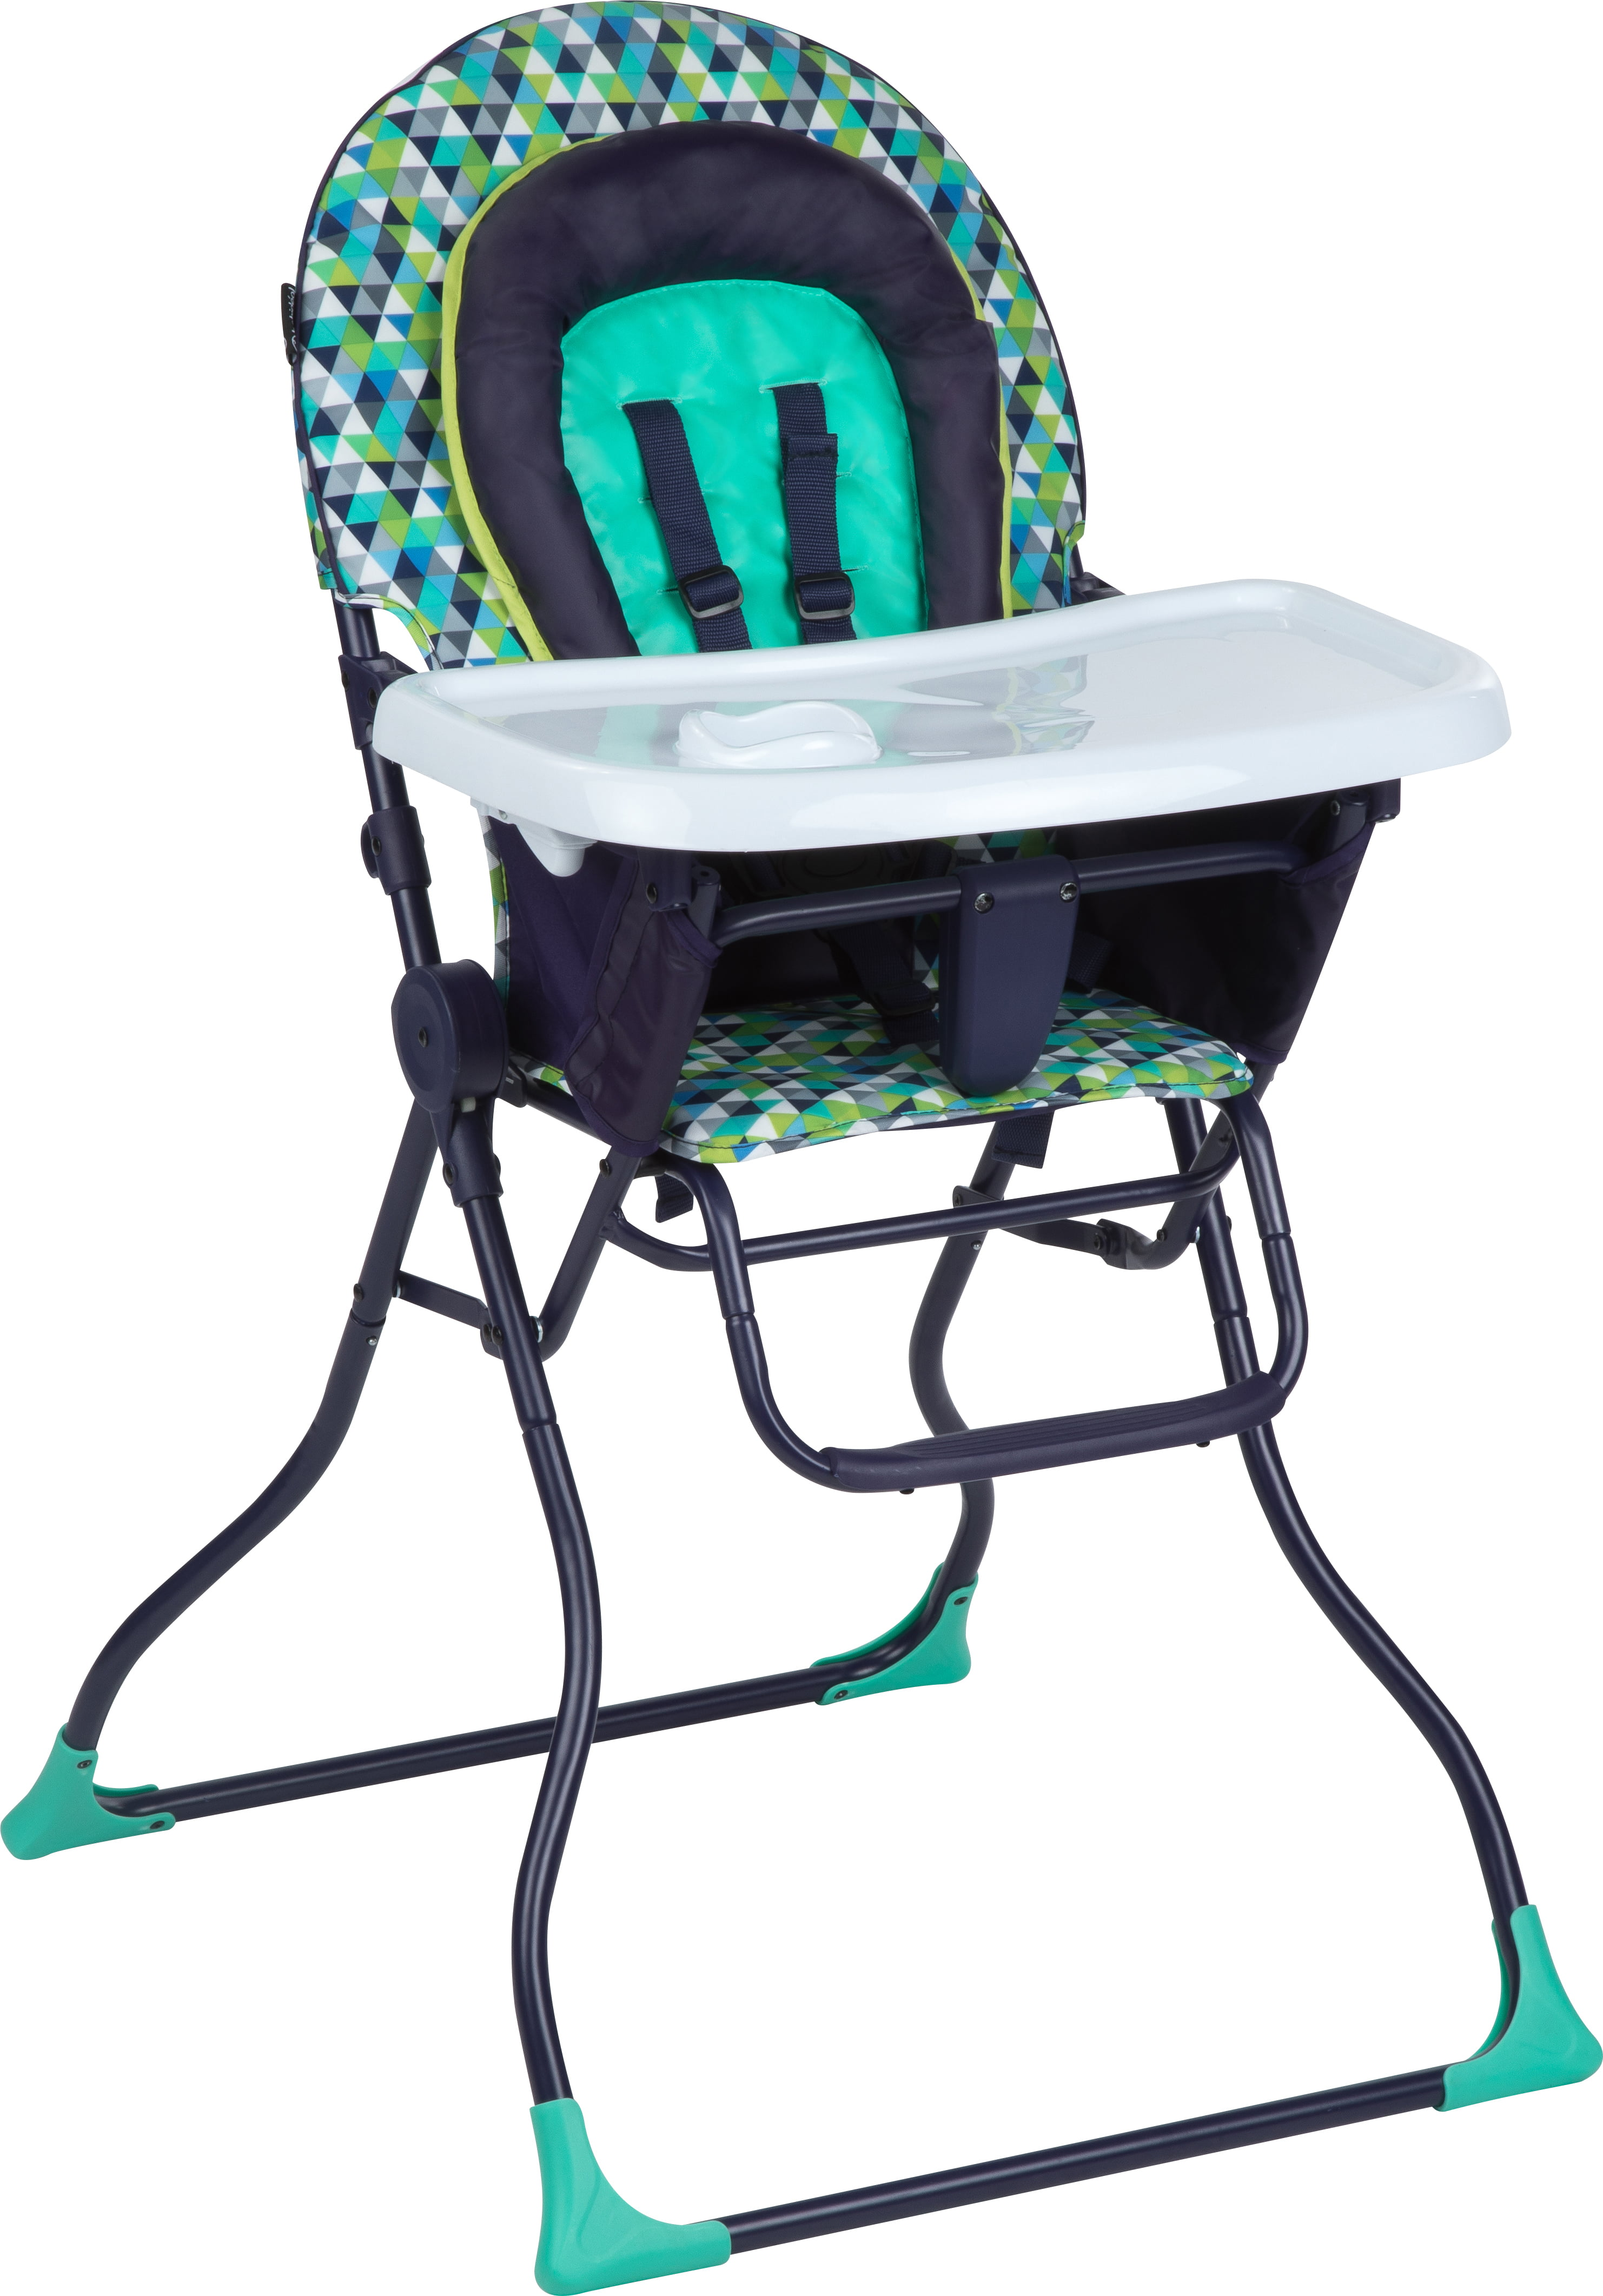 Portable baby high chair belt seat infant foldable sacking dinning seat cover FO